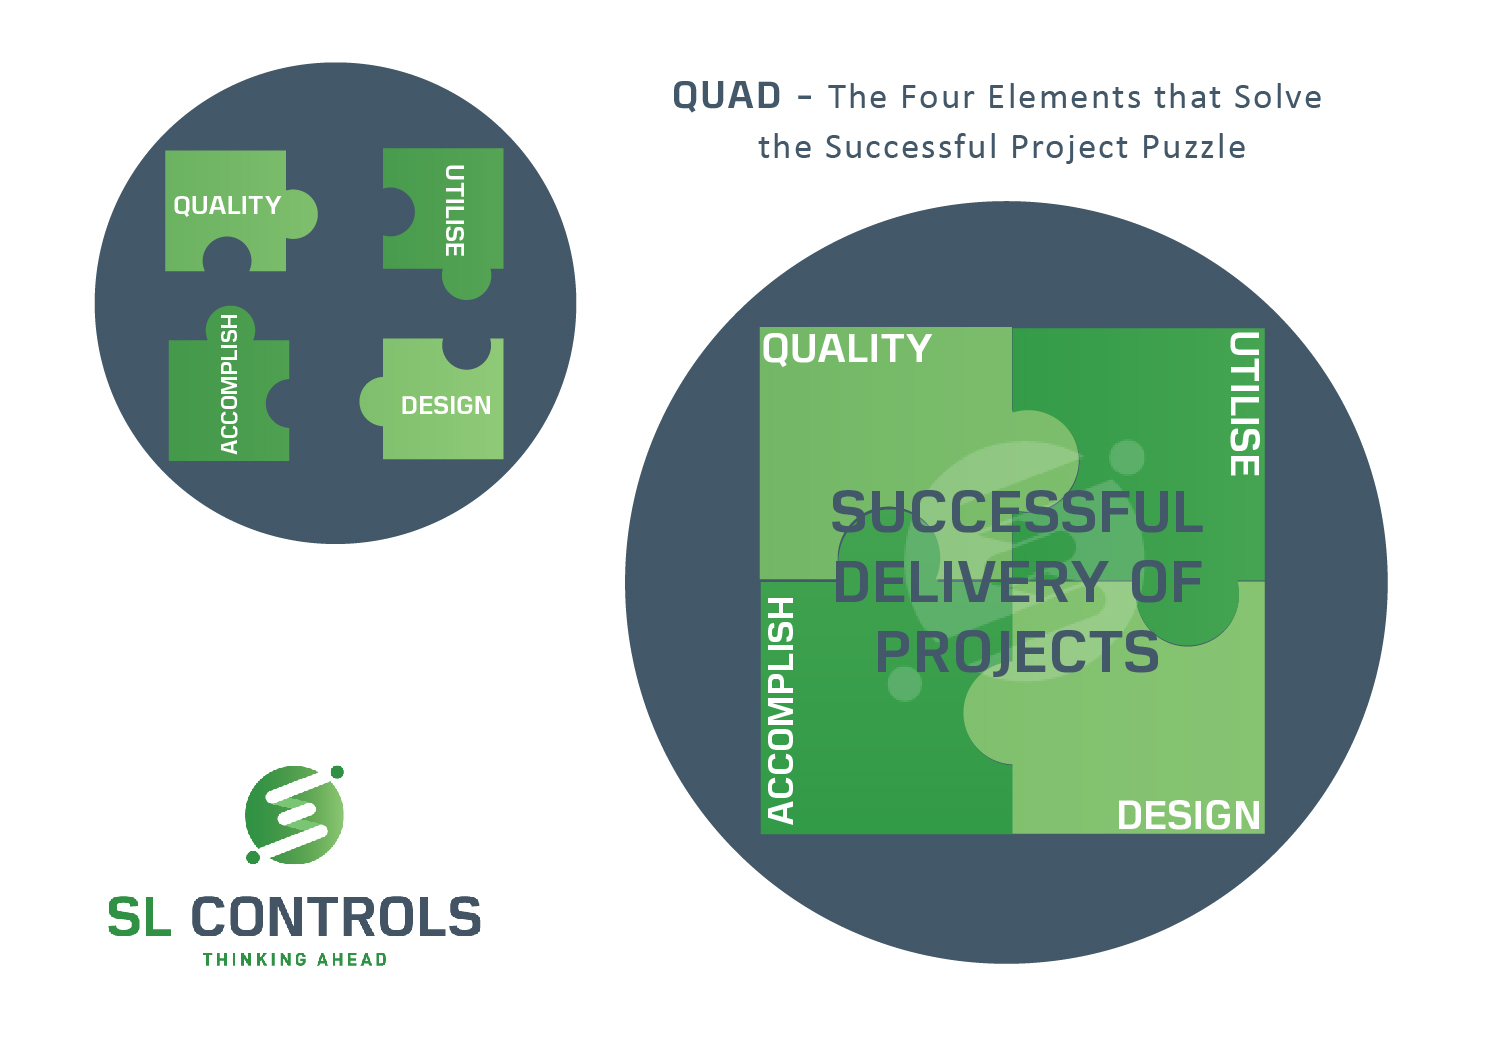 QUAD - the Four Elements that Solve the Successful Project Puzzle